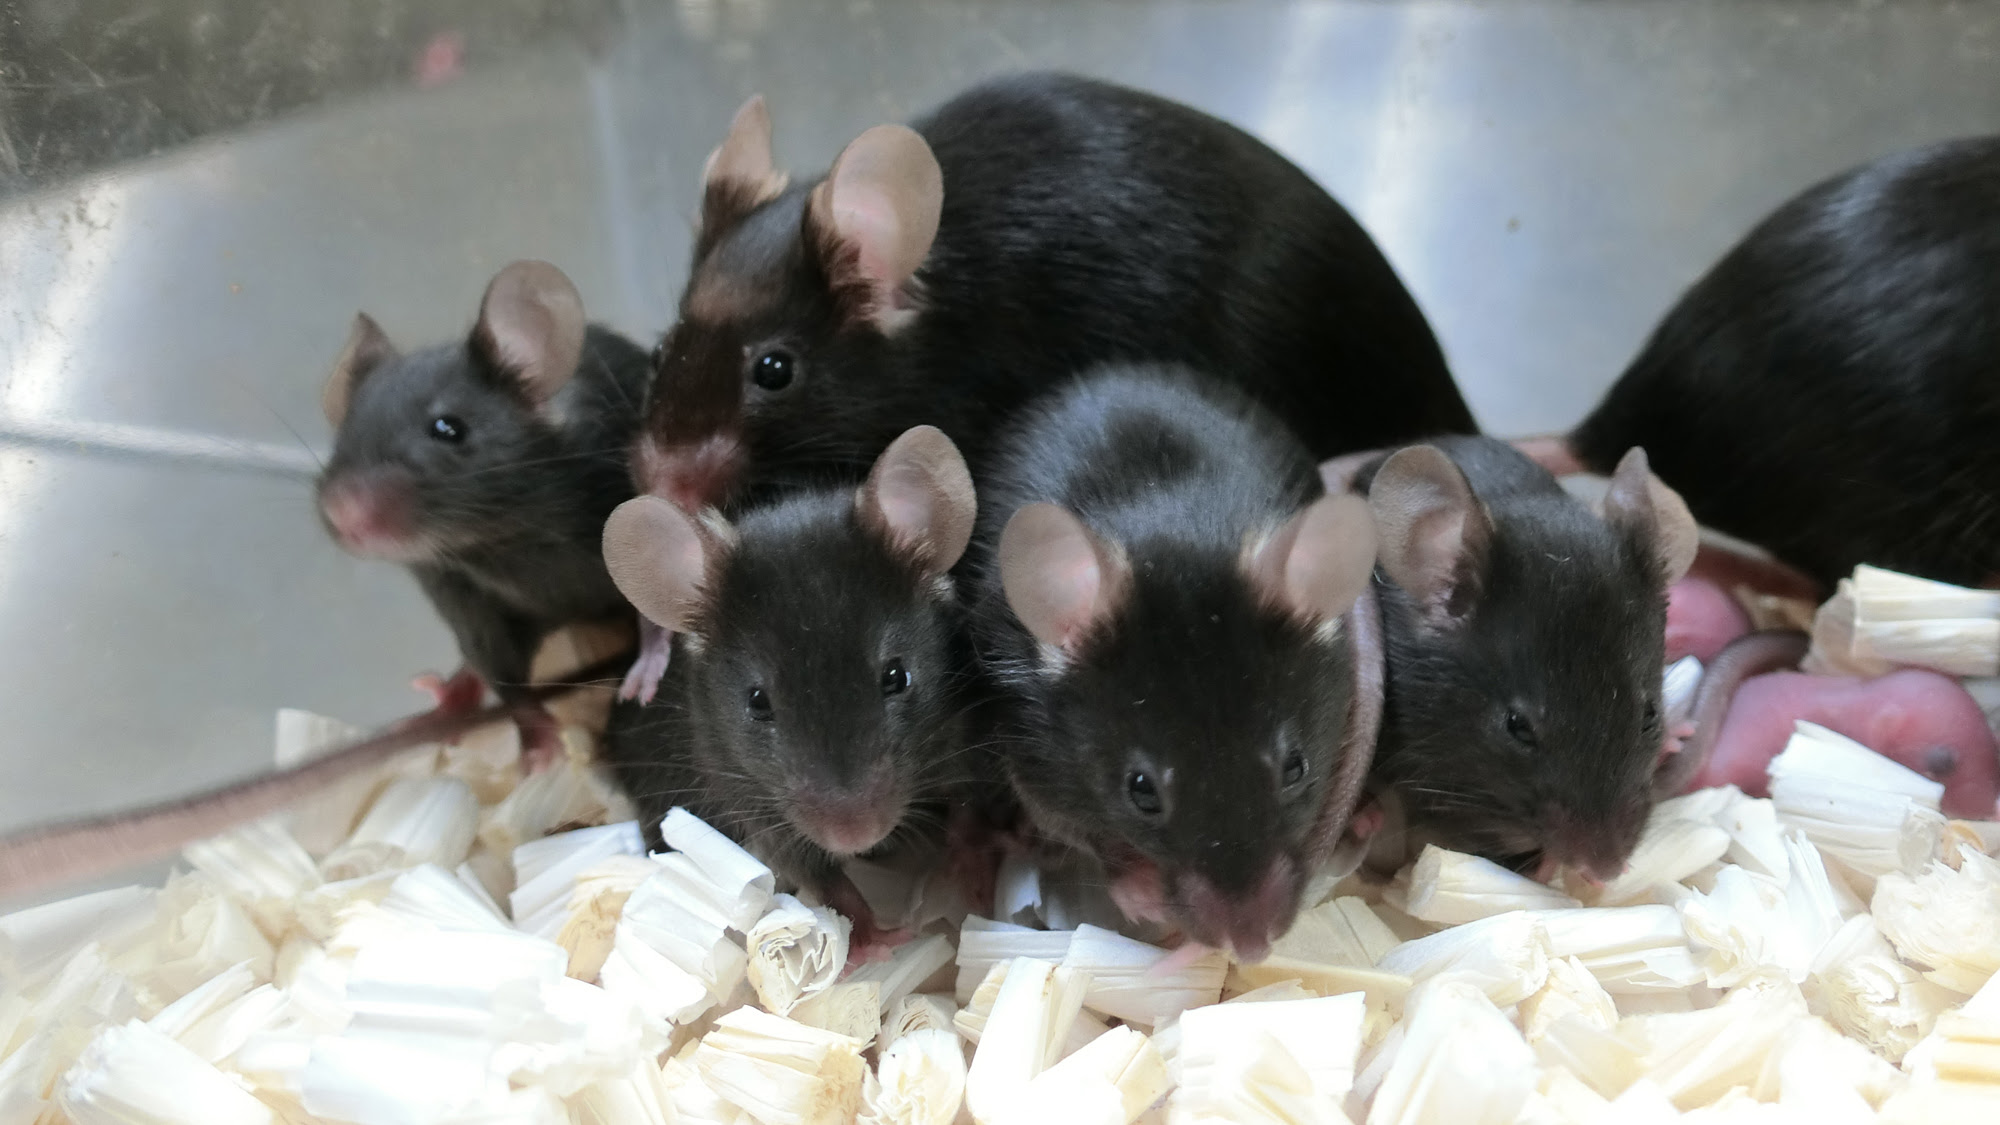 'Space pups' born from freeze-dried mouse sperm stored on space station